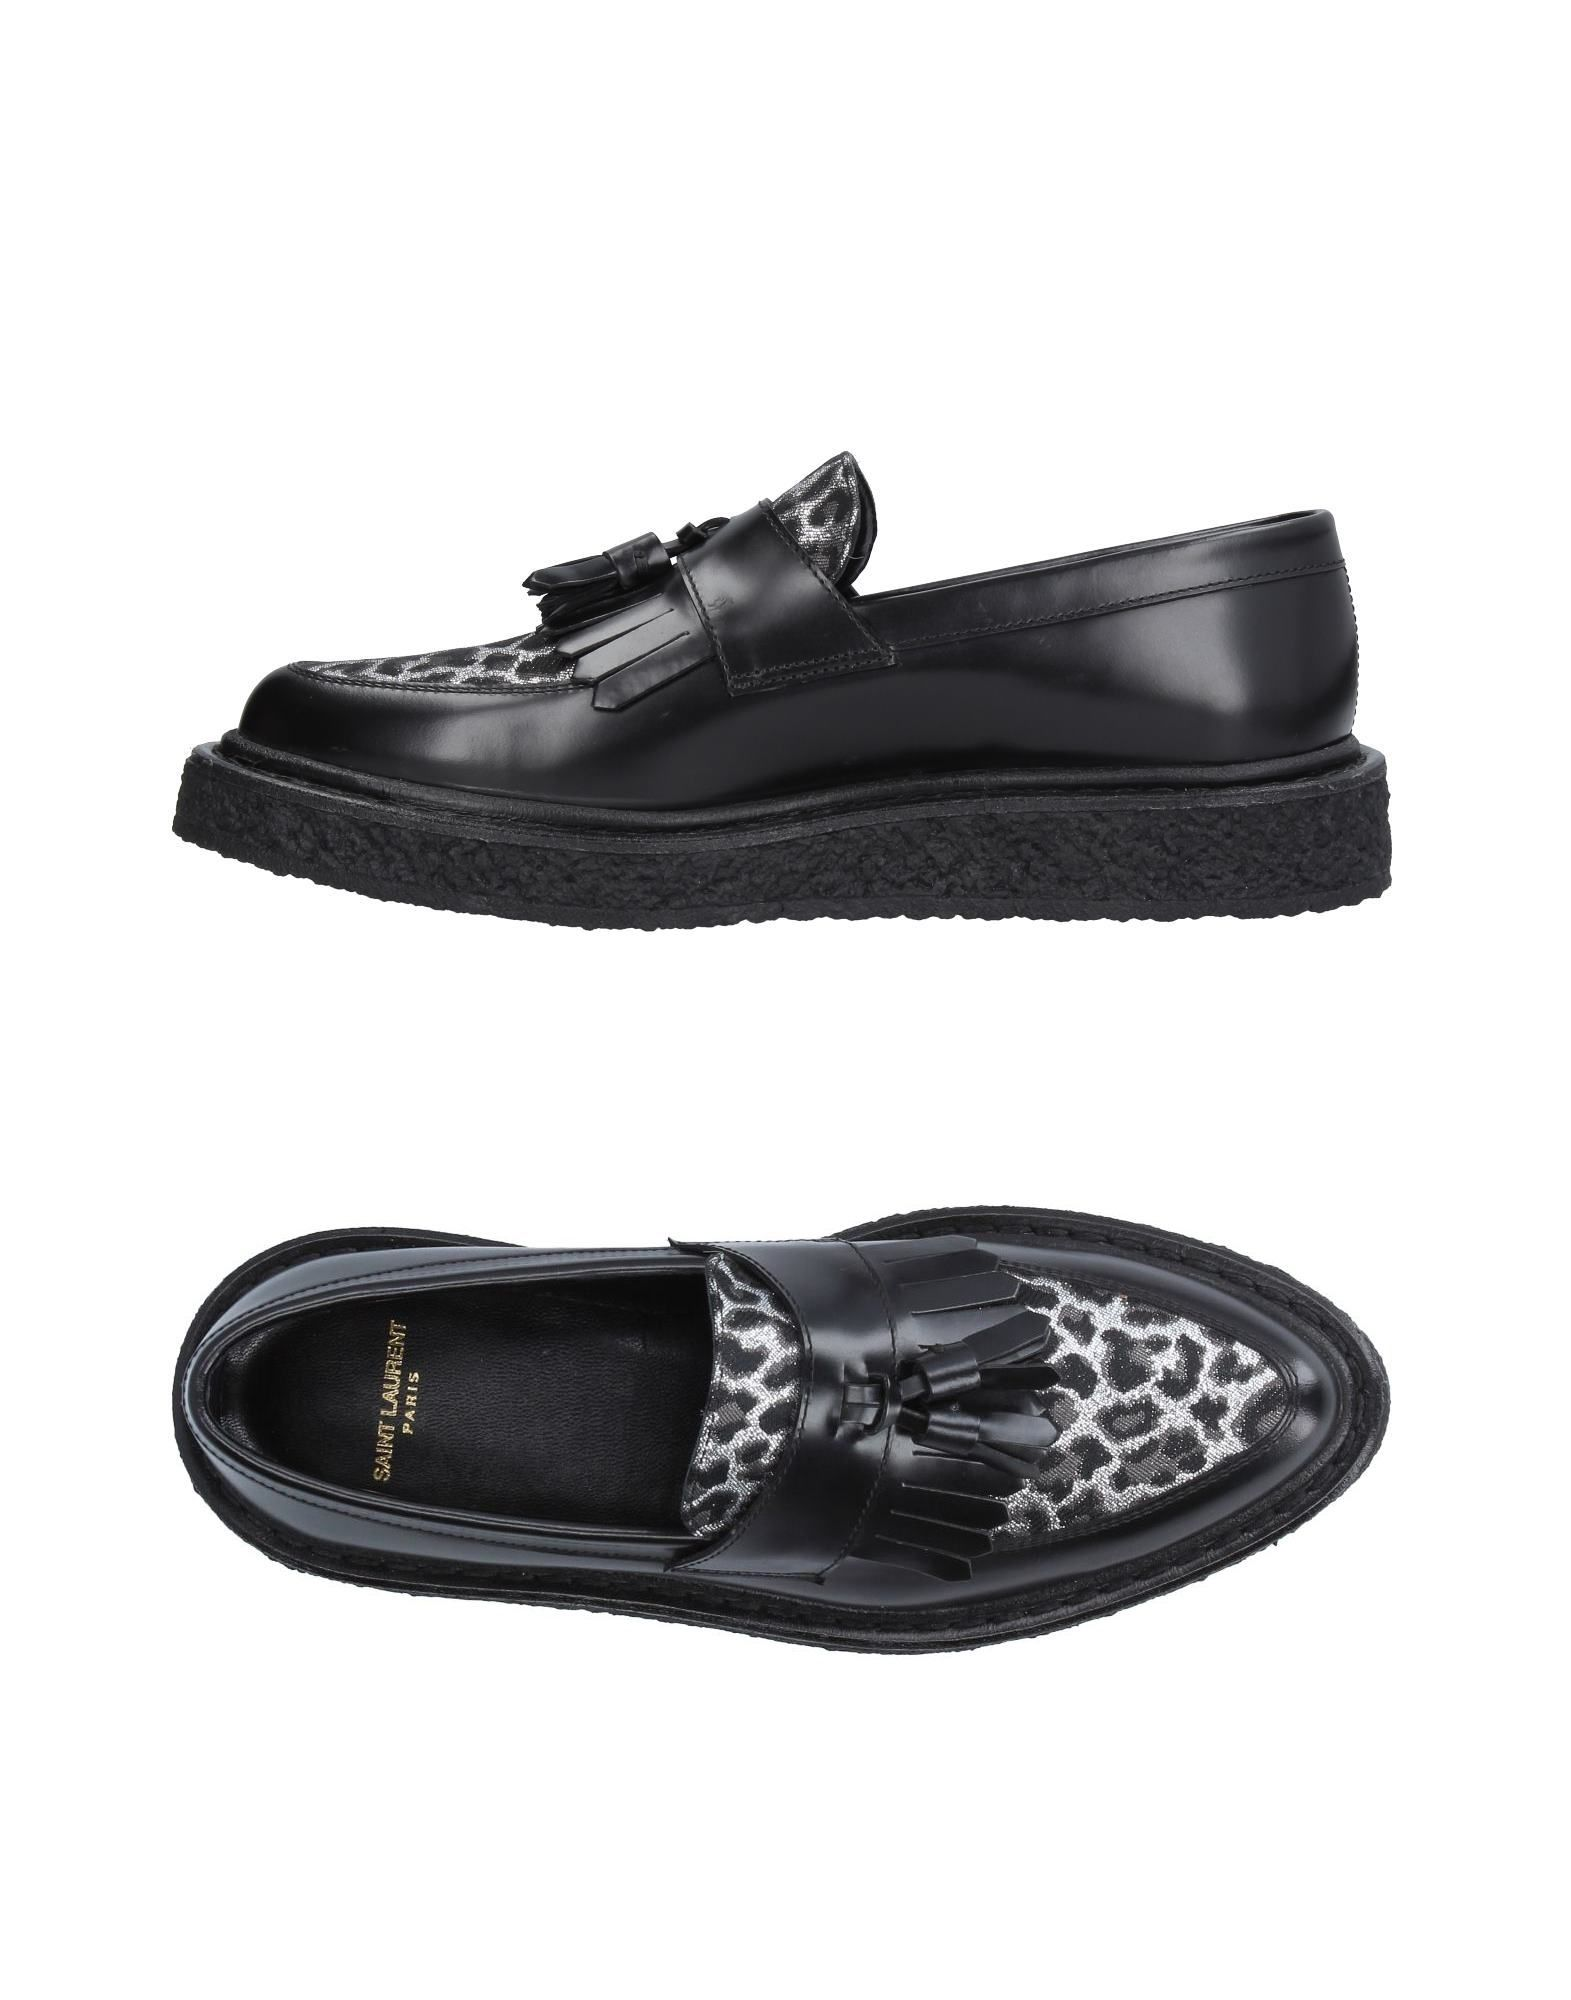 Saint Laurent Loafers Loafers - Women Saint Laurent Loafers Loafers online on  Canada - 11214183WM 5f73a7